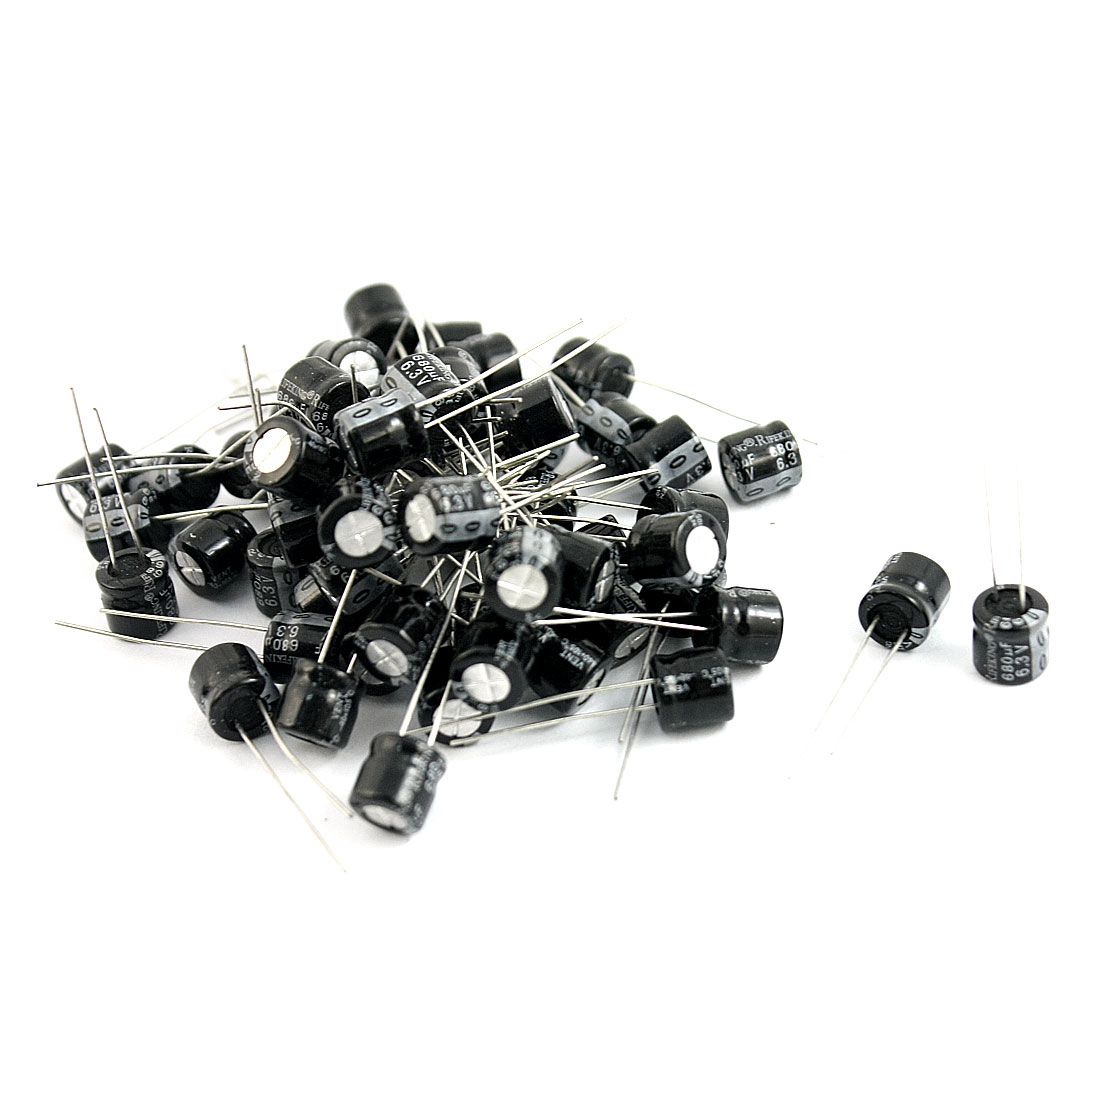 60 Pcs 680uF 6.3V 105C Radial Electrolytic Capacitors Black 8x7mm